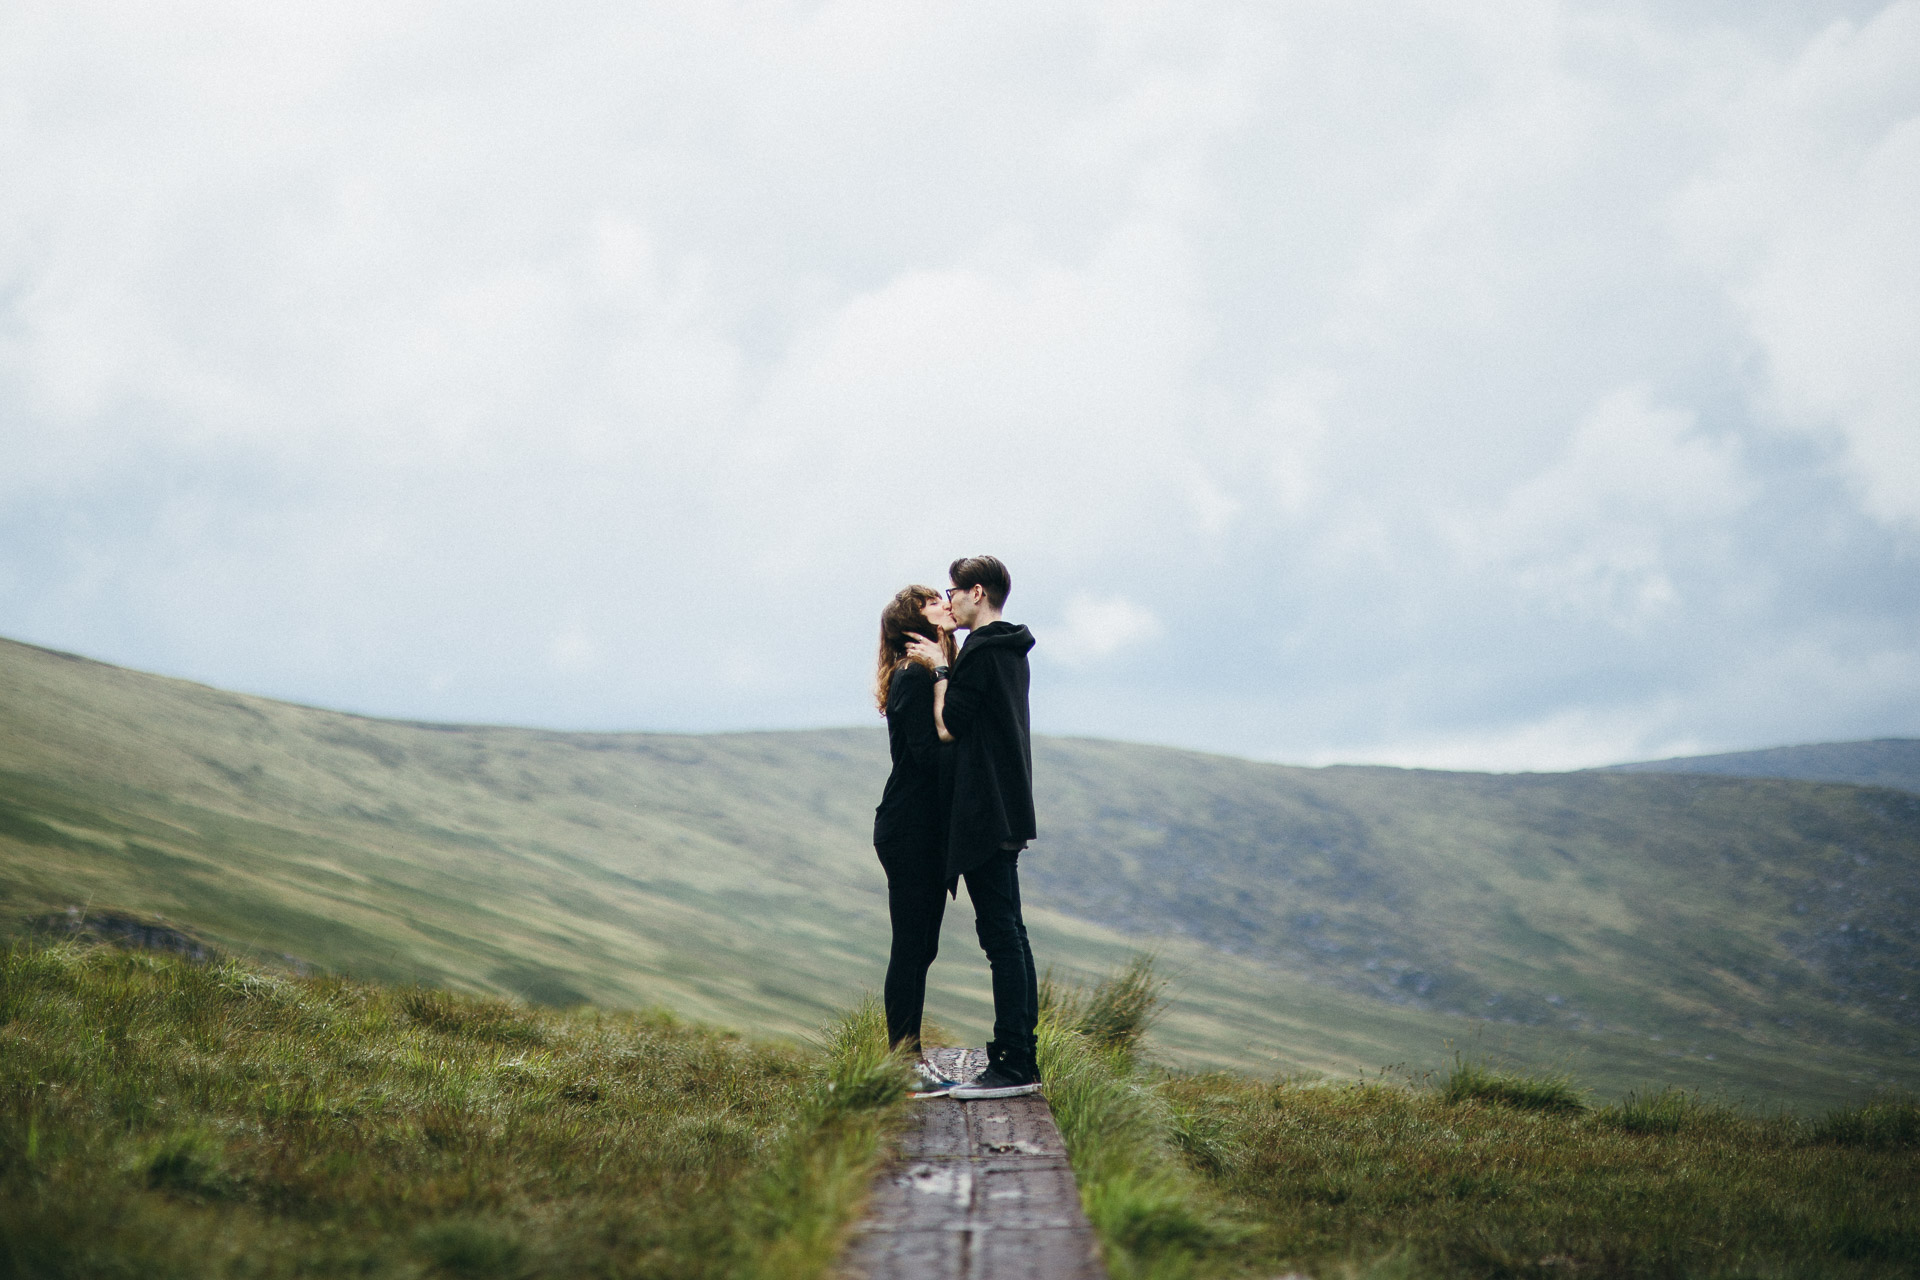 Wicklow Mountains Engagement Session in Ireland by Jean-Laurent Gaudy Photography